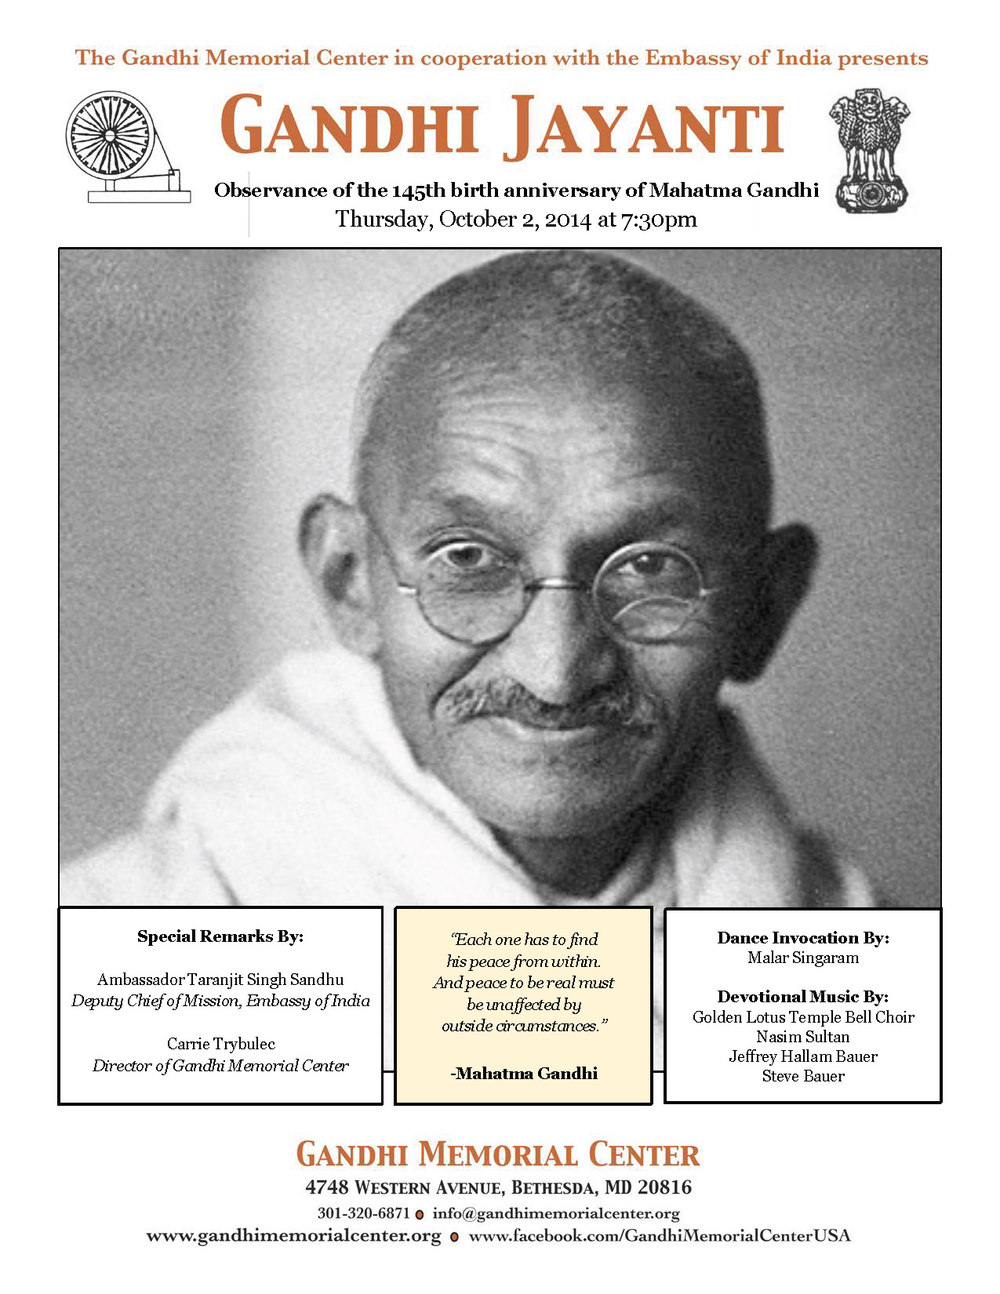 essay on gandhi jayanthi Our third important national festival is the gandhi jayanti it is celebrated on 2nd october every year mahatma gandhi, the father of our nation was born on 2nd october 1869.